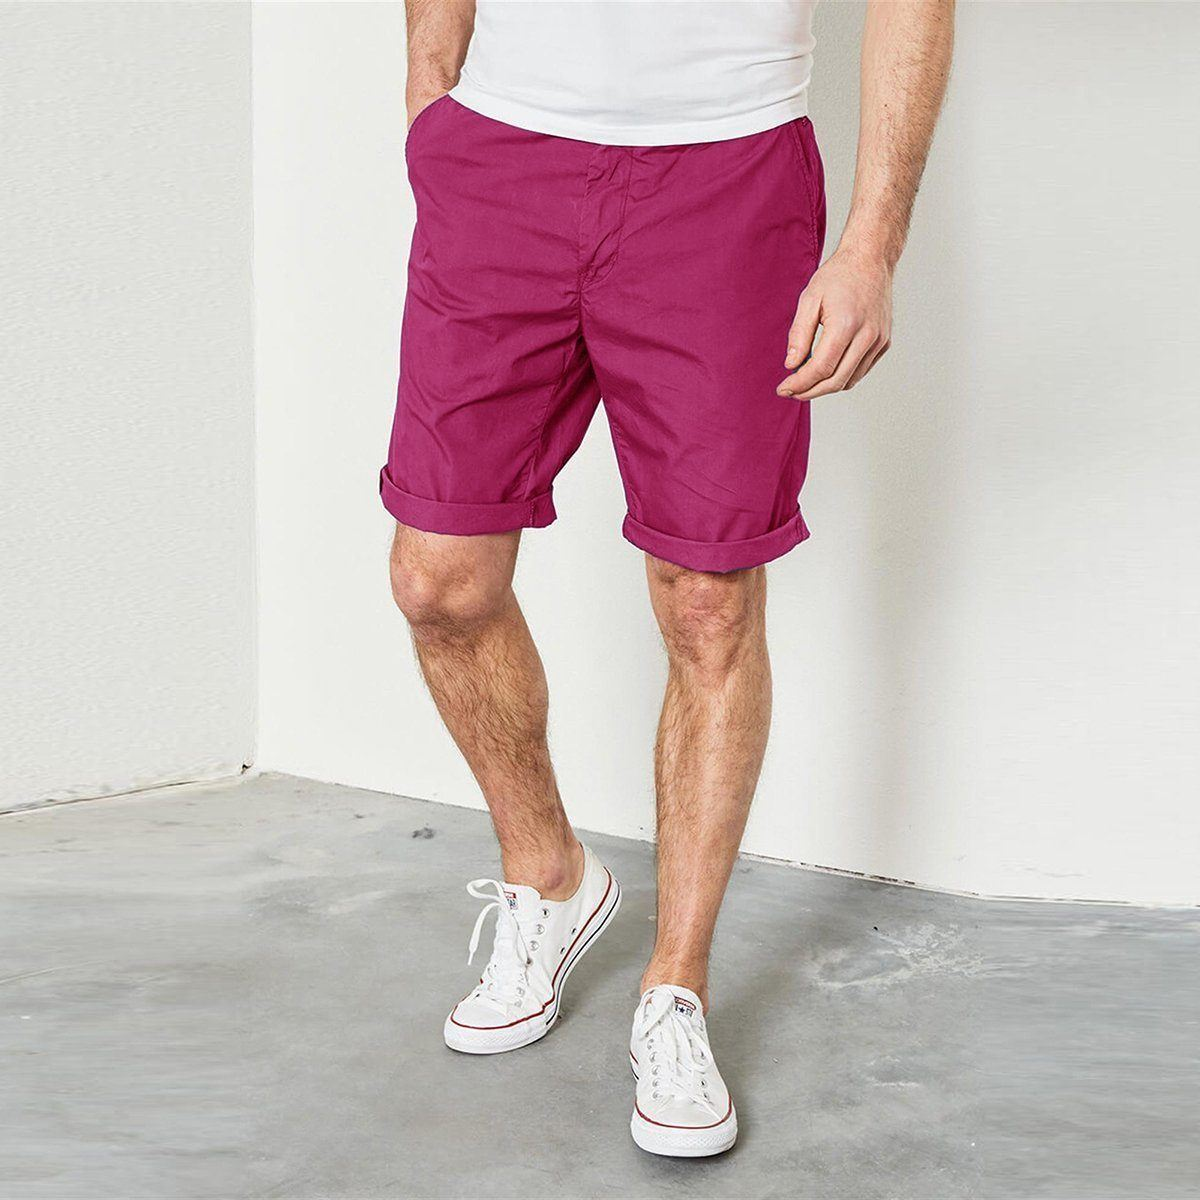 SLIM FIT NON STRETCH COTTON PINK SHORTS (3747452977212)